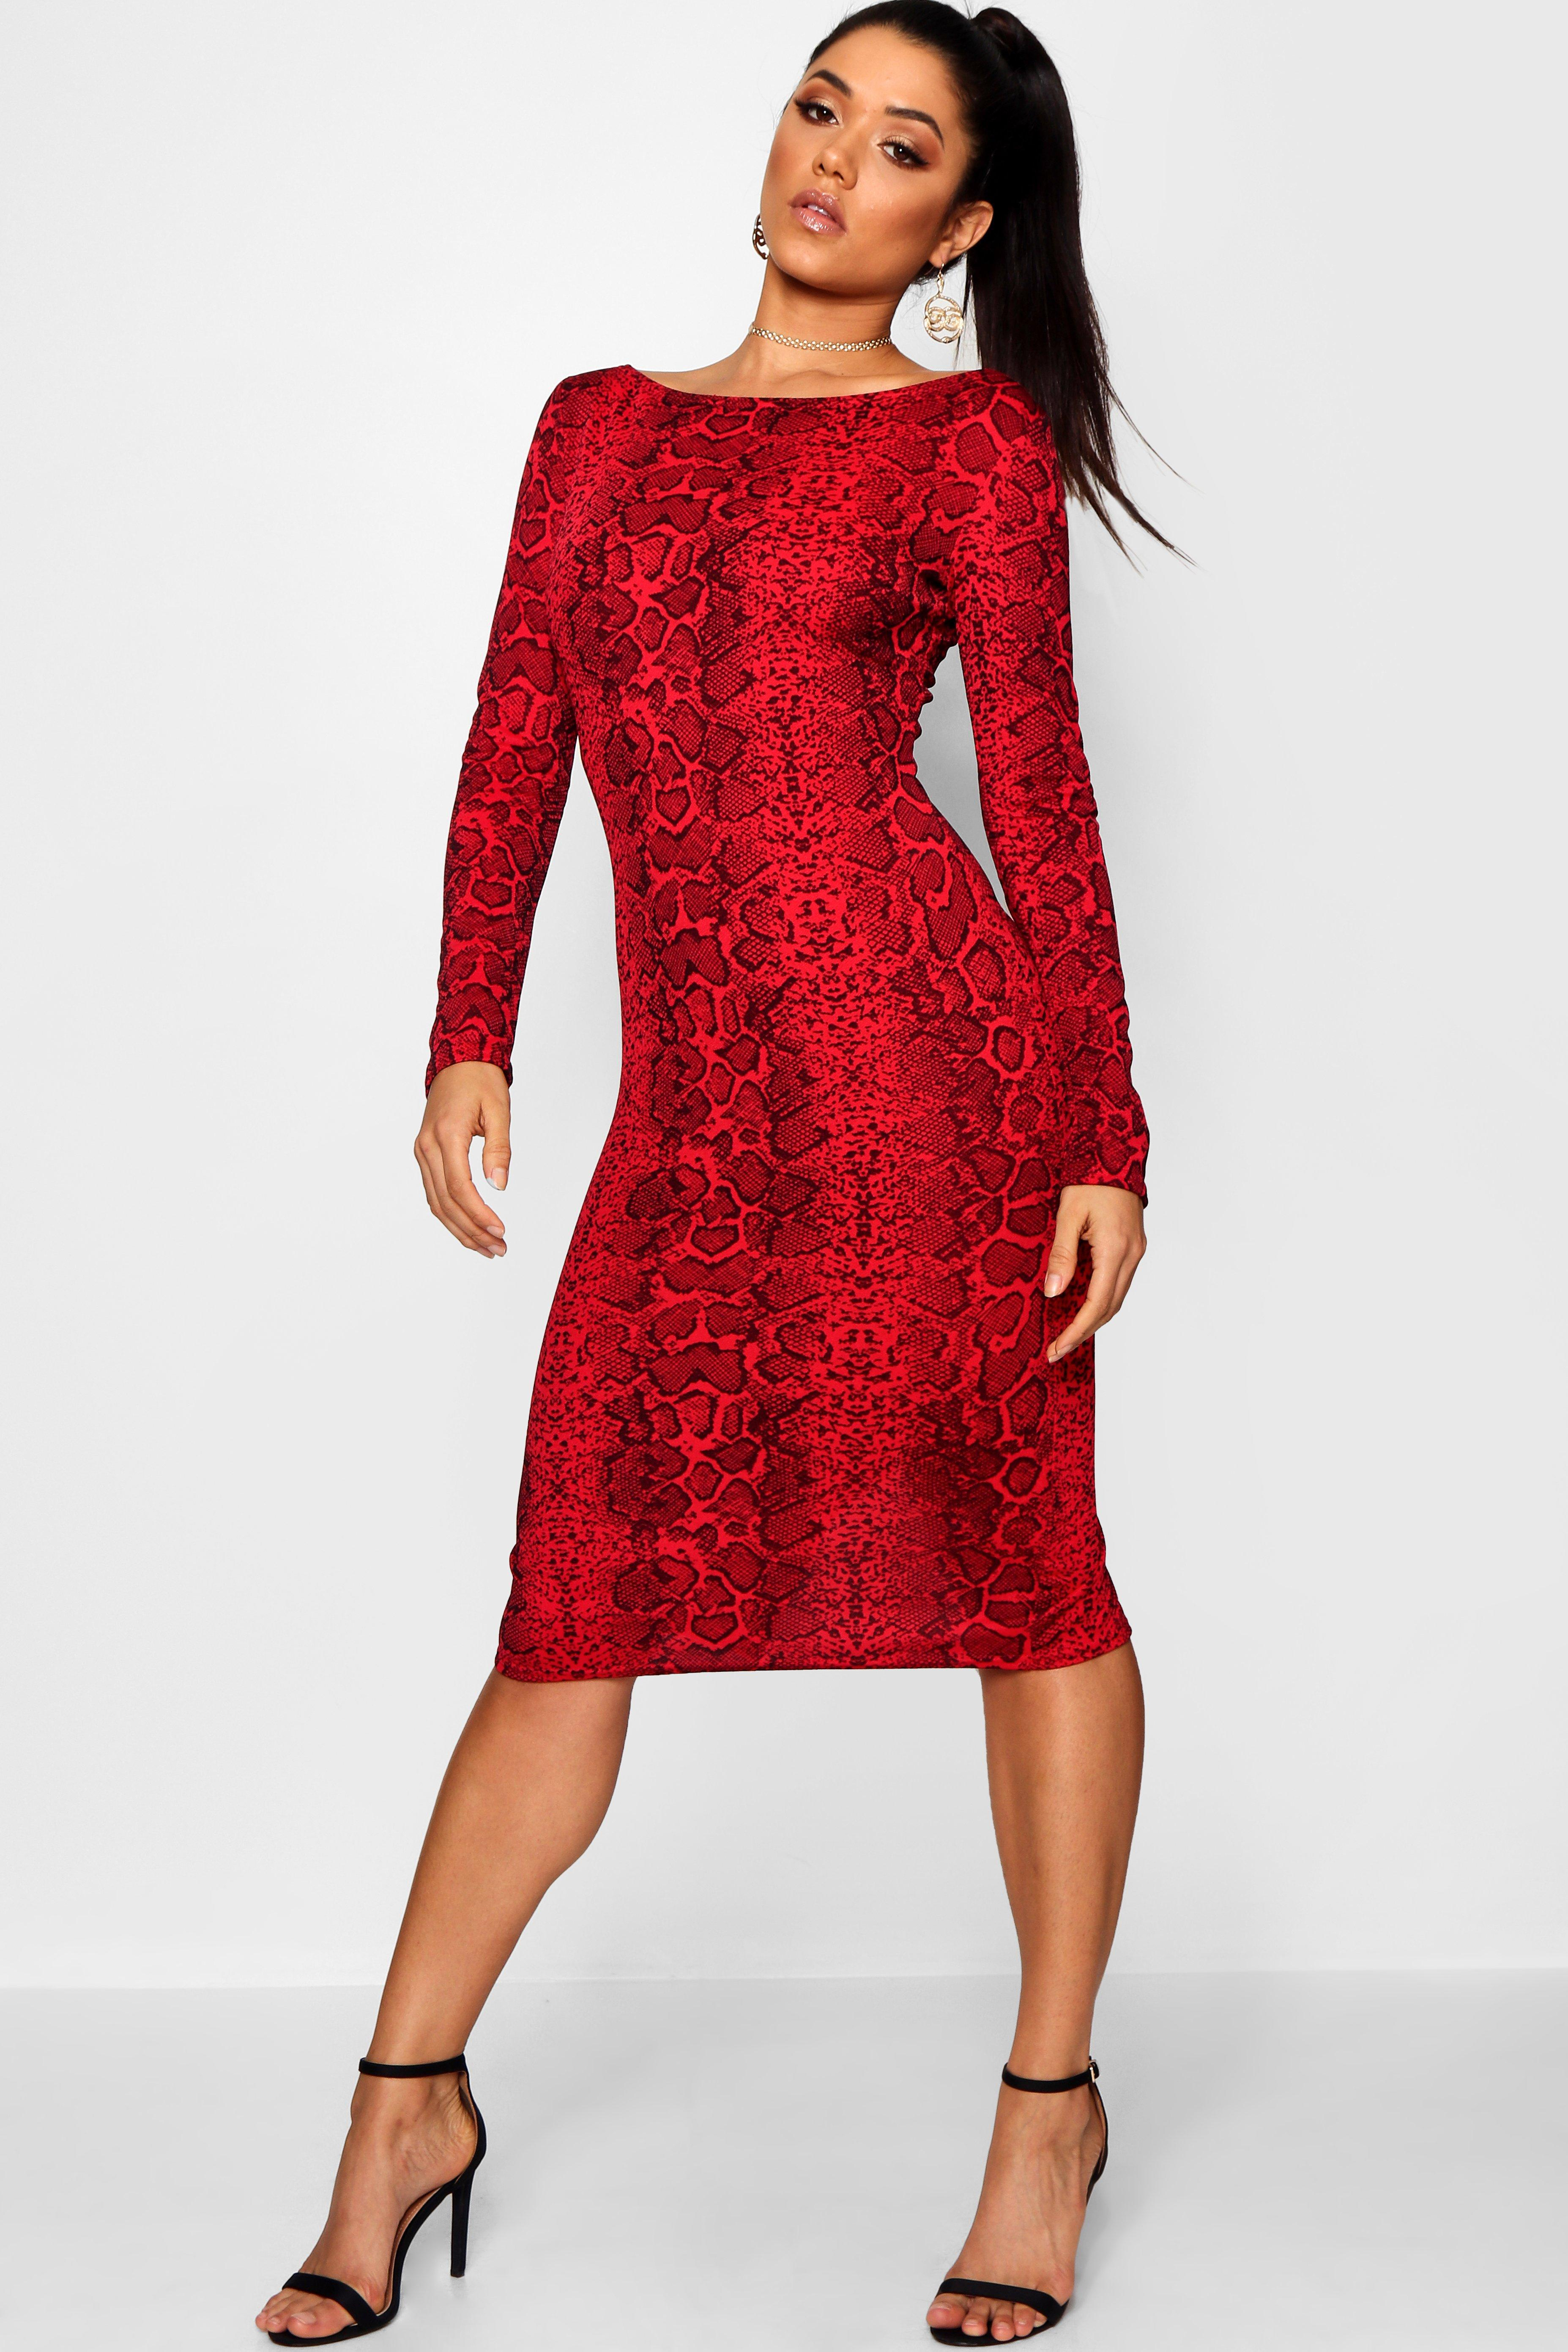 35e18ecbed10 Boohoo Snake Print Bodycon Midi Dress in Red - Lyst